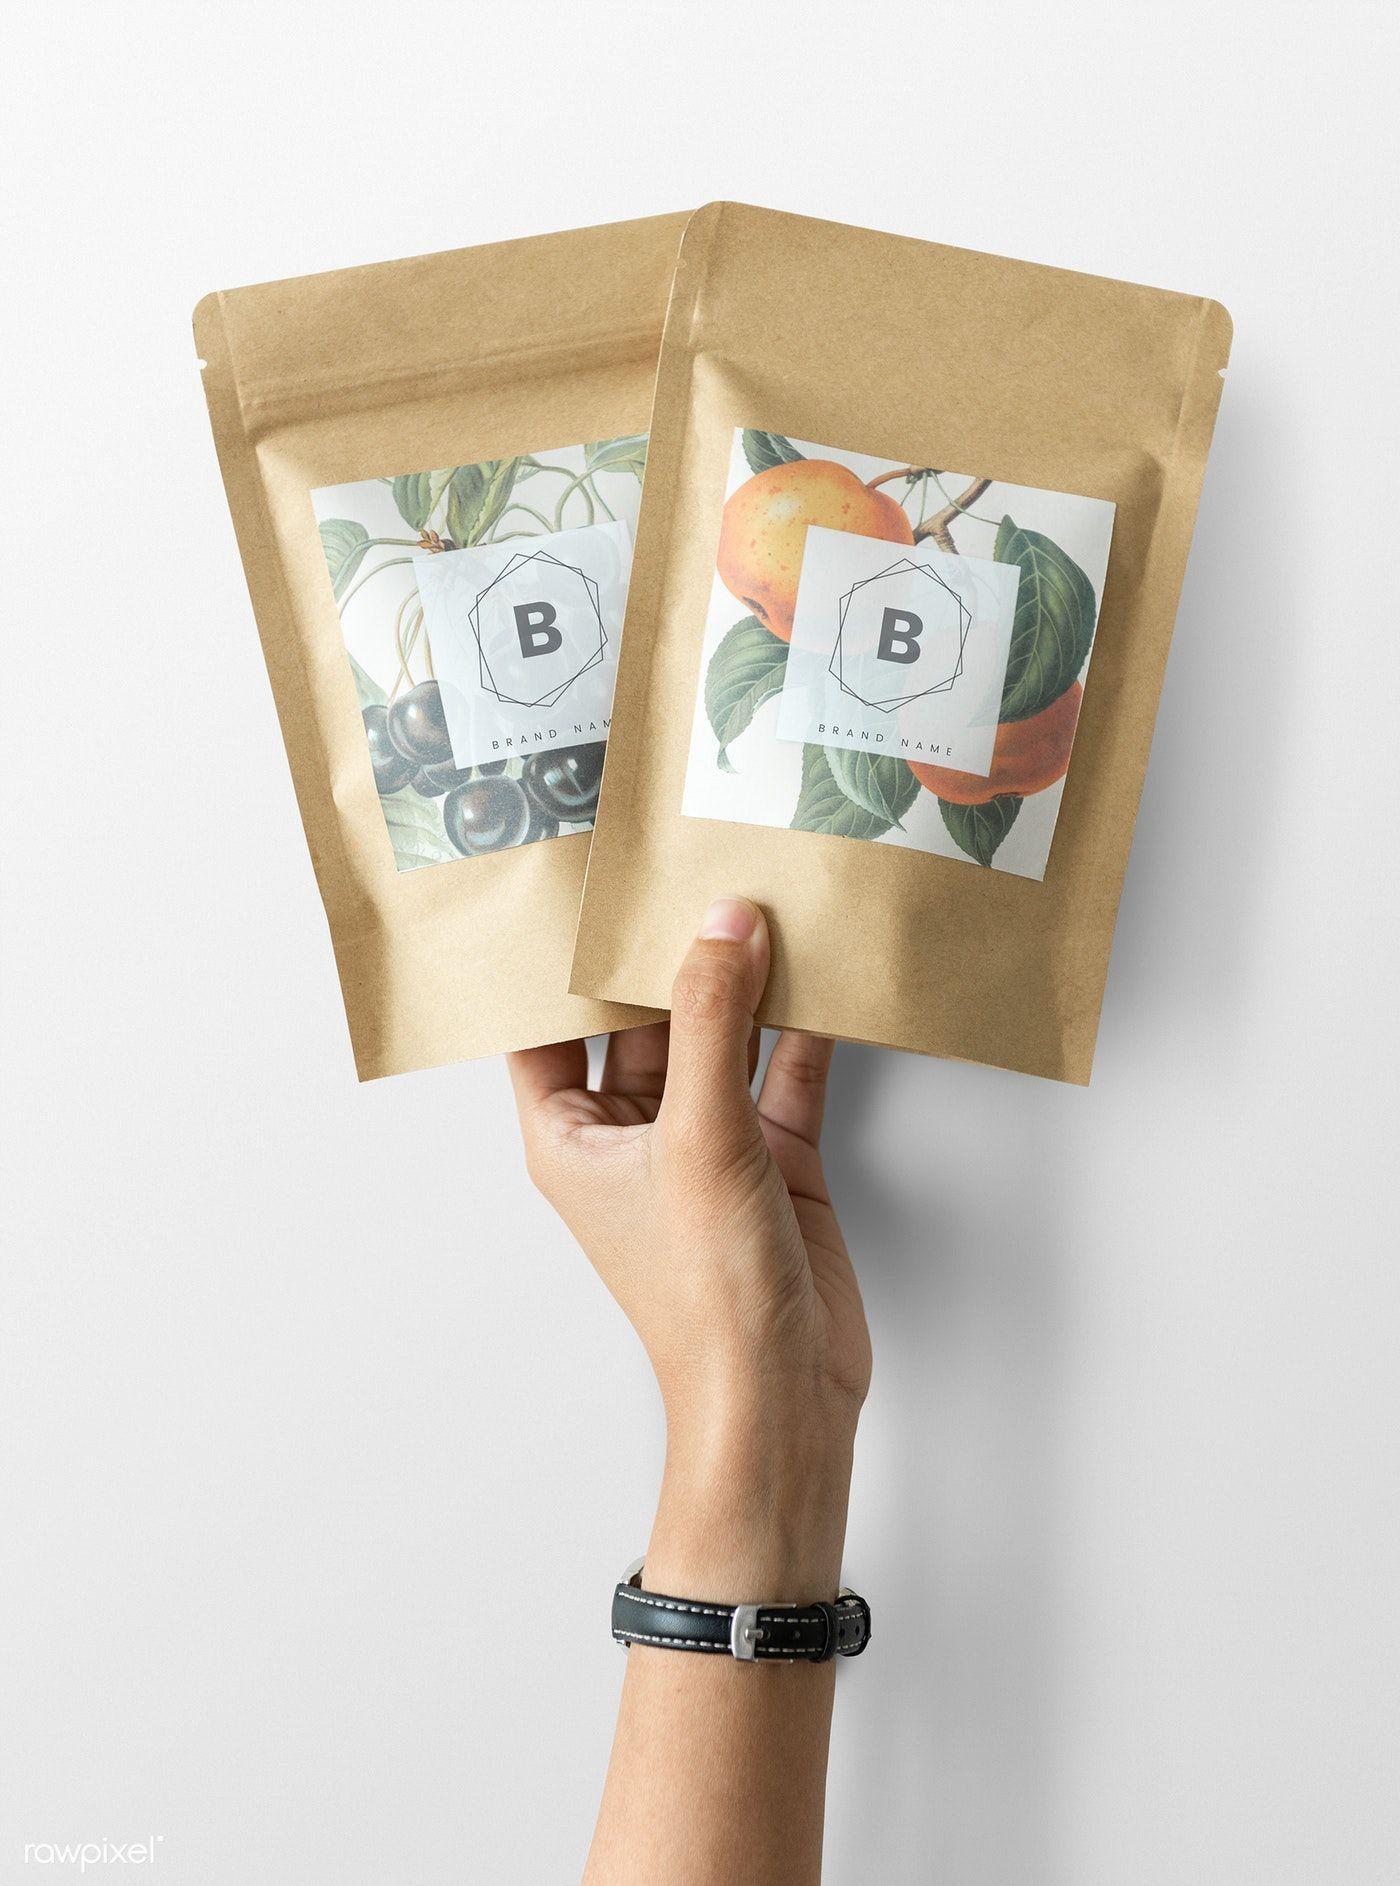 Organic Tea Branding And Packaging Mockup Free Image By Rawpixel Com Ake Teapackaging Organic Emballage Organique Photographie De Produits Magasin De The